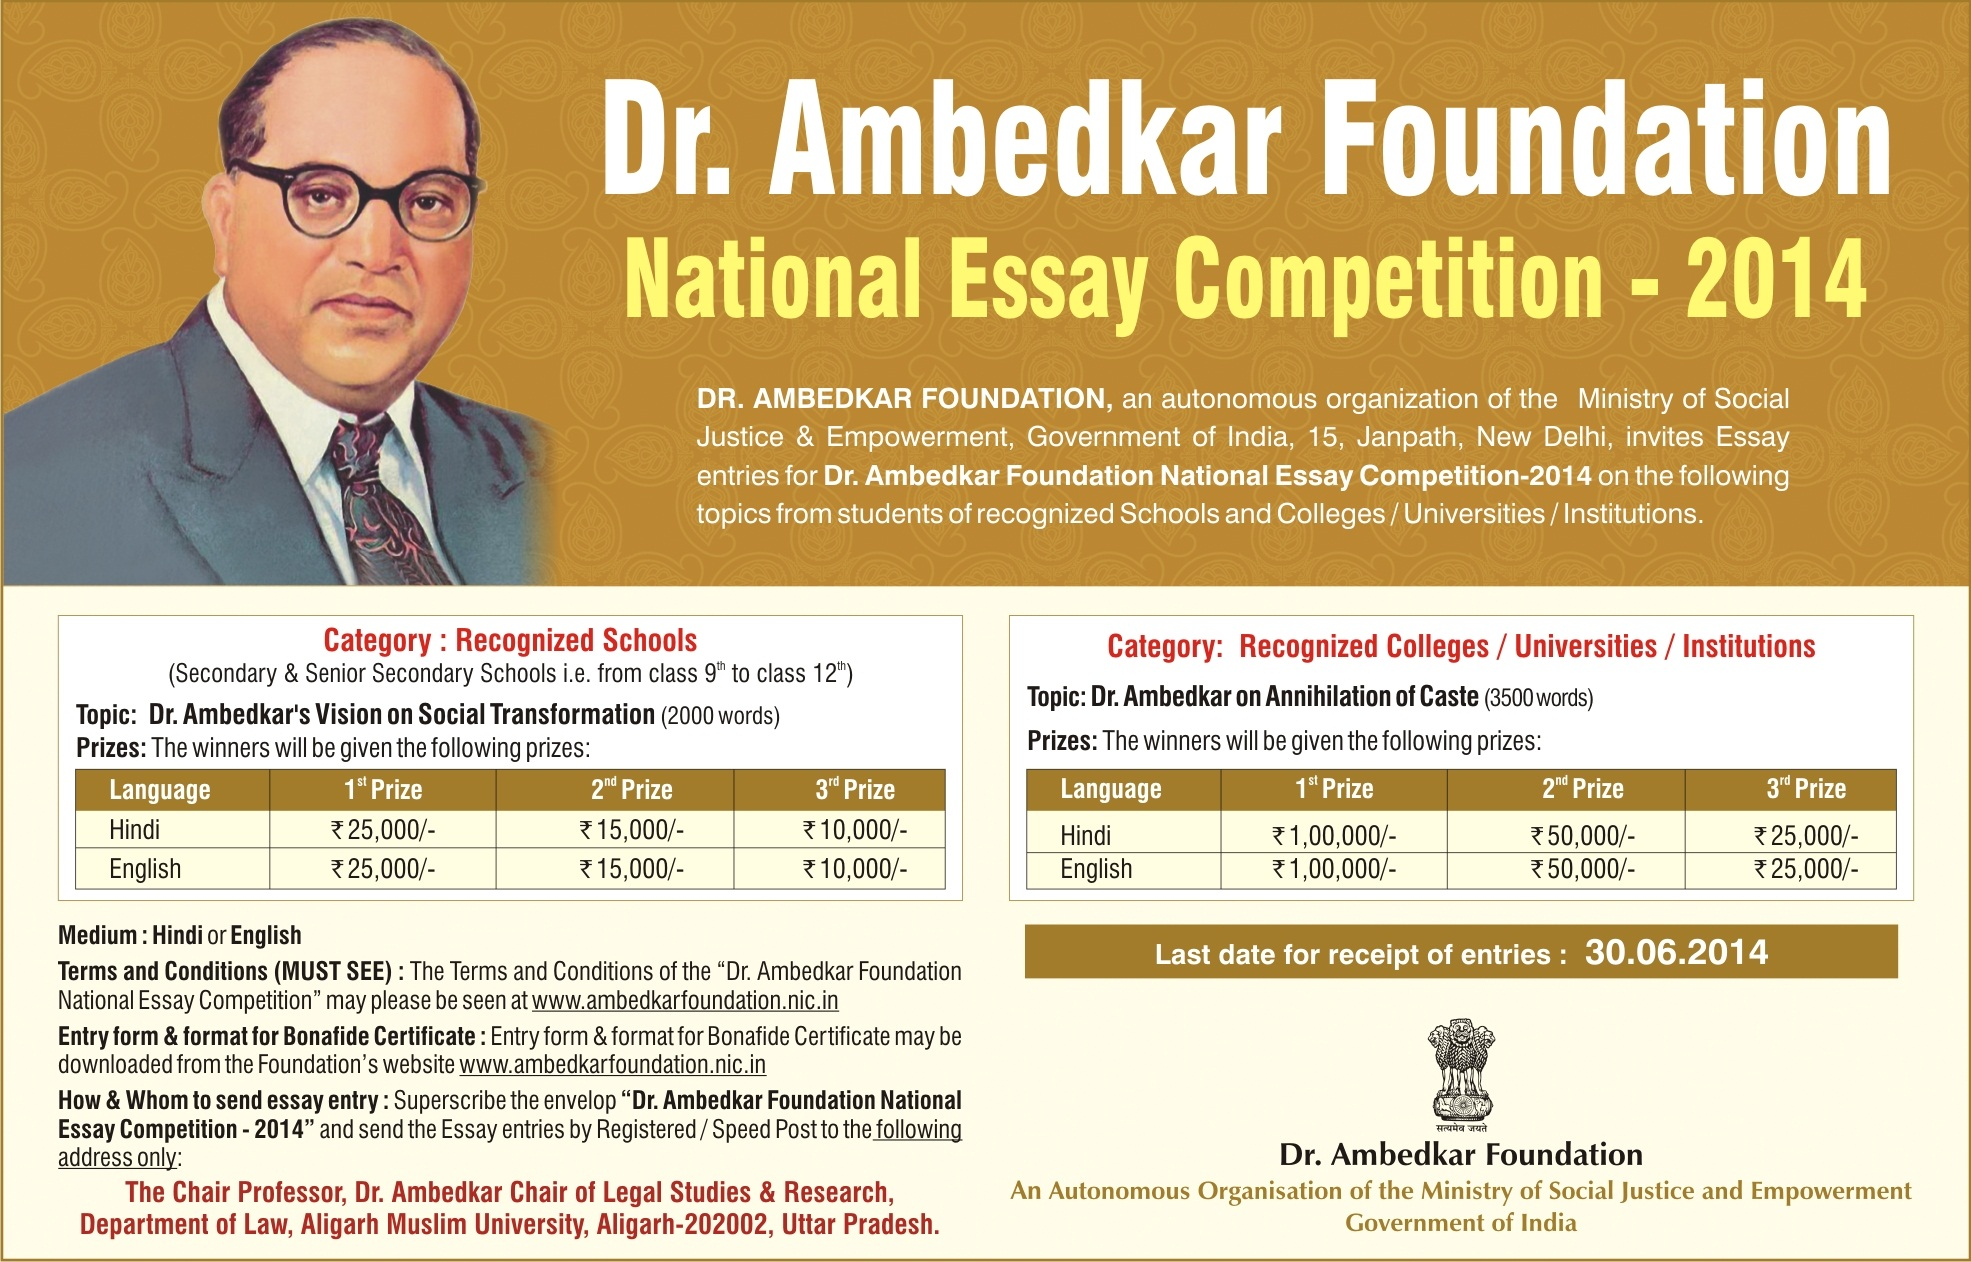 dr ambedkar foundation national essay competition 2014 essay ad eng